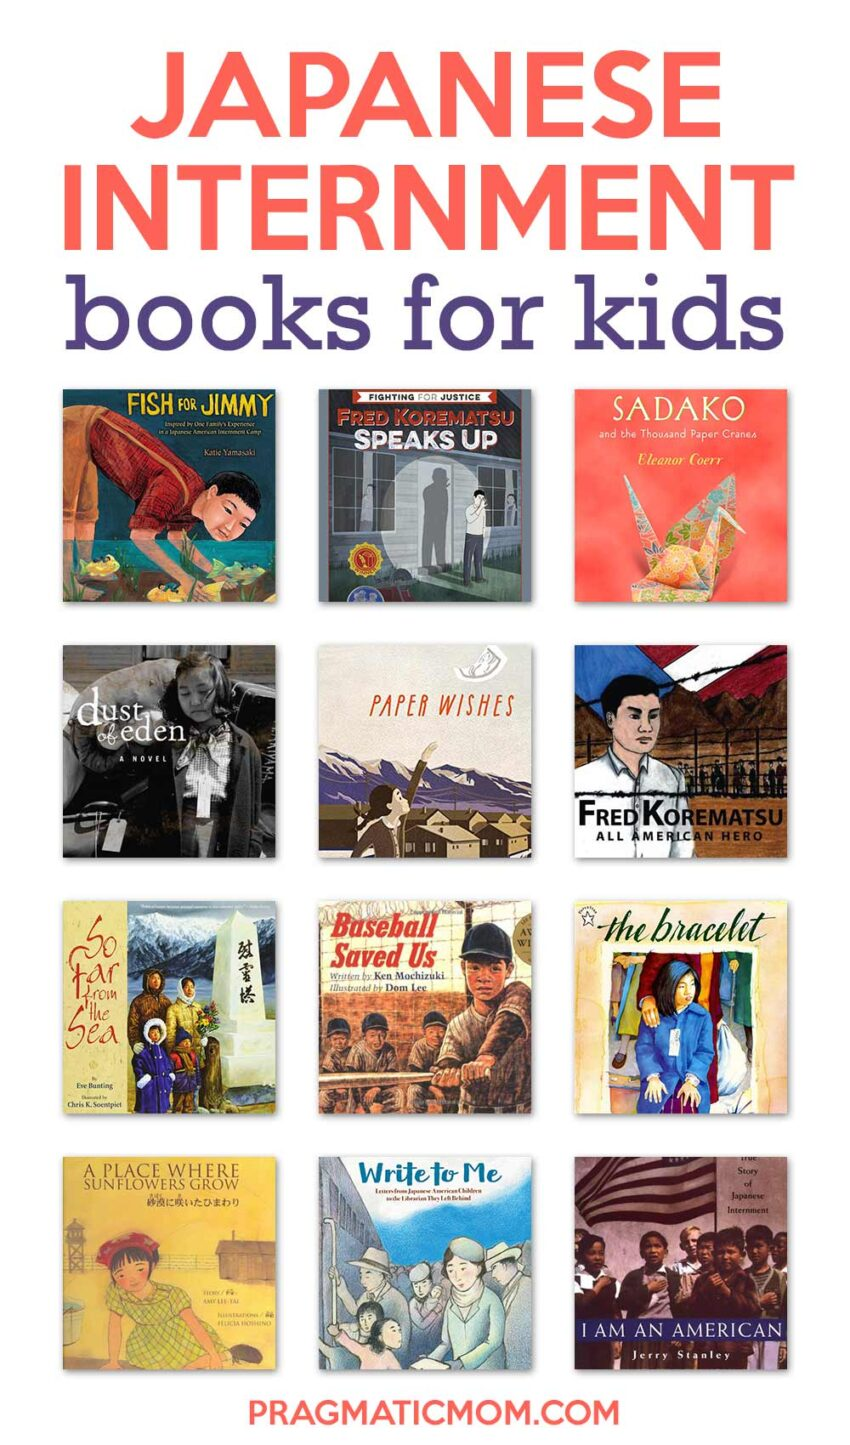 Japanese Internment Books for Kids